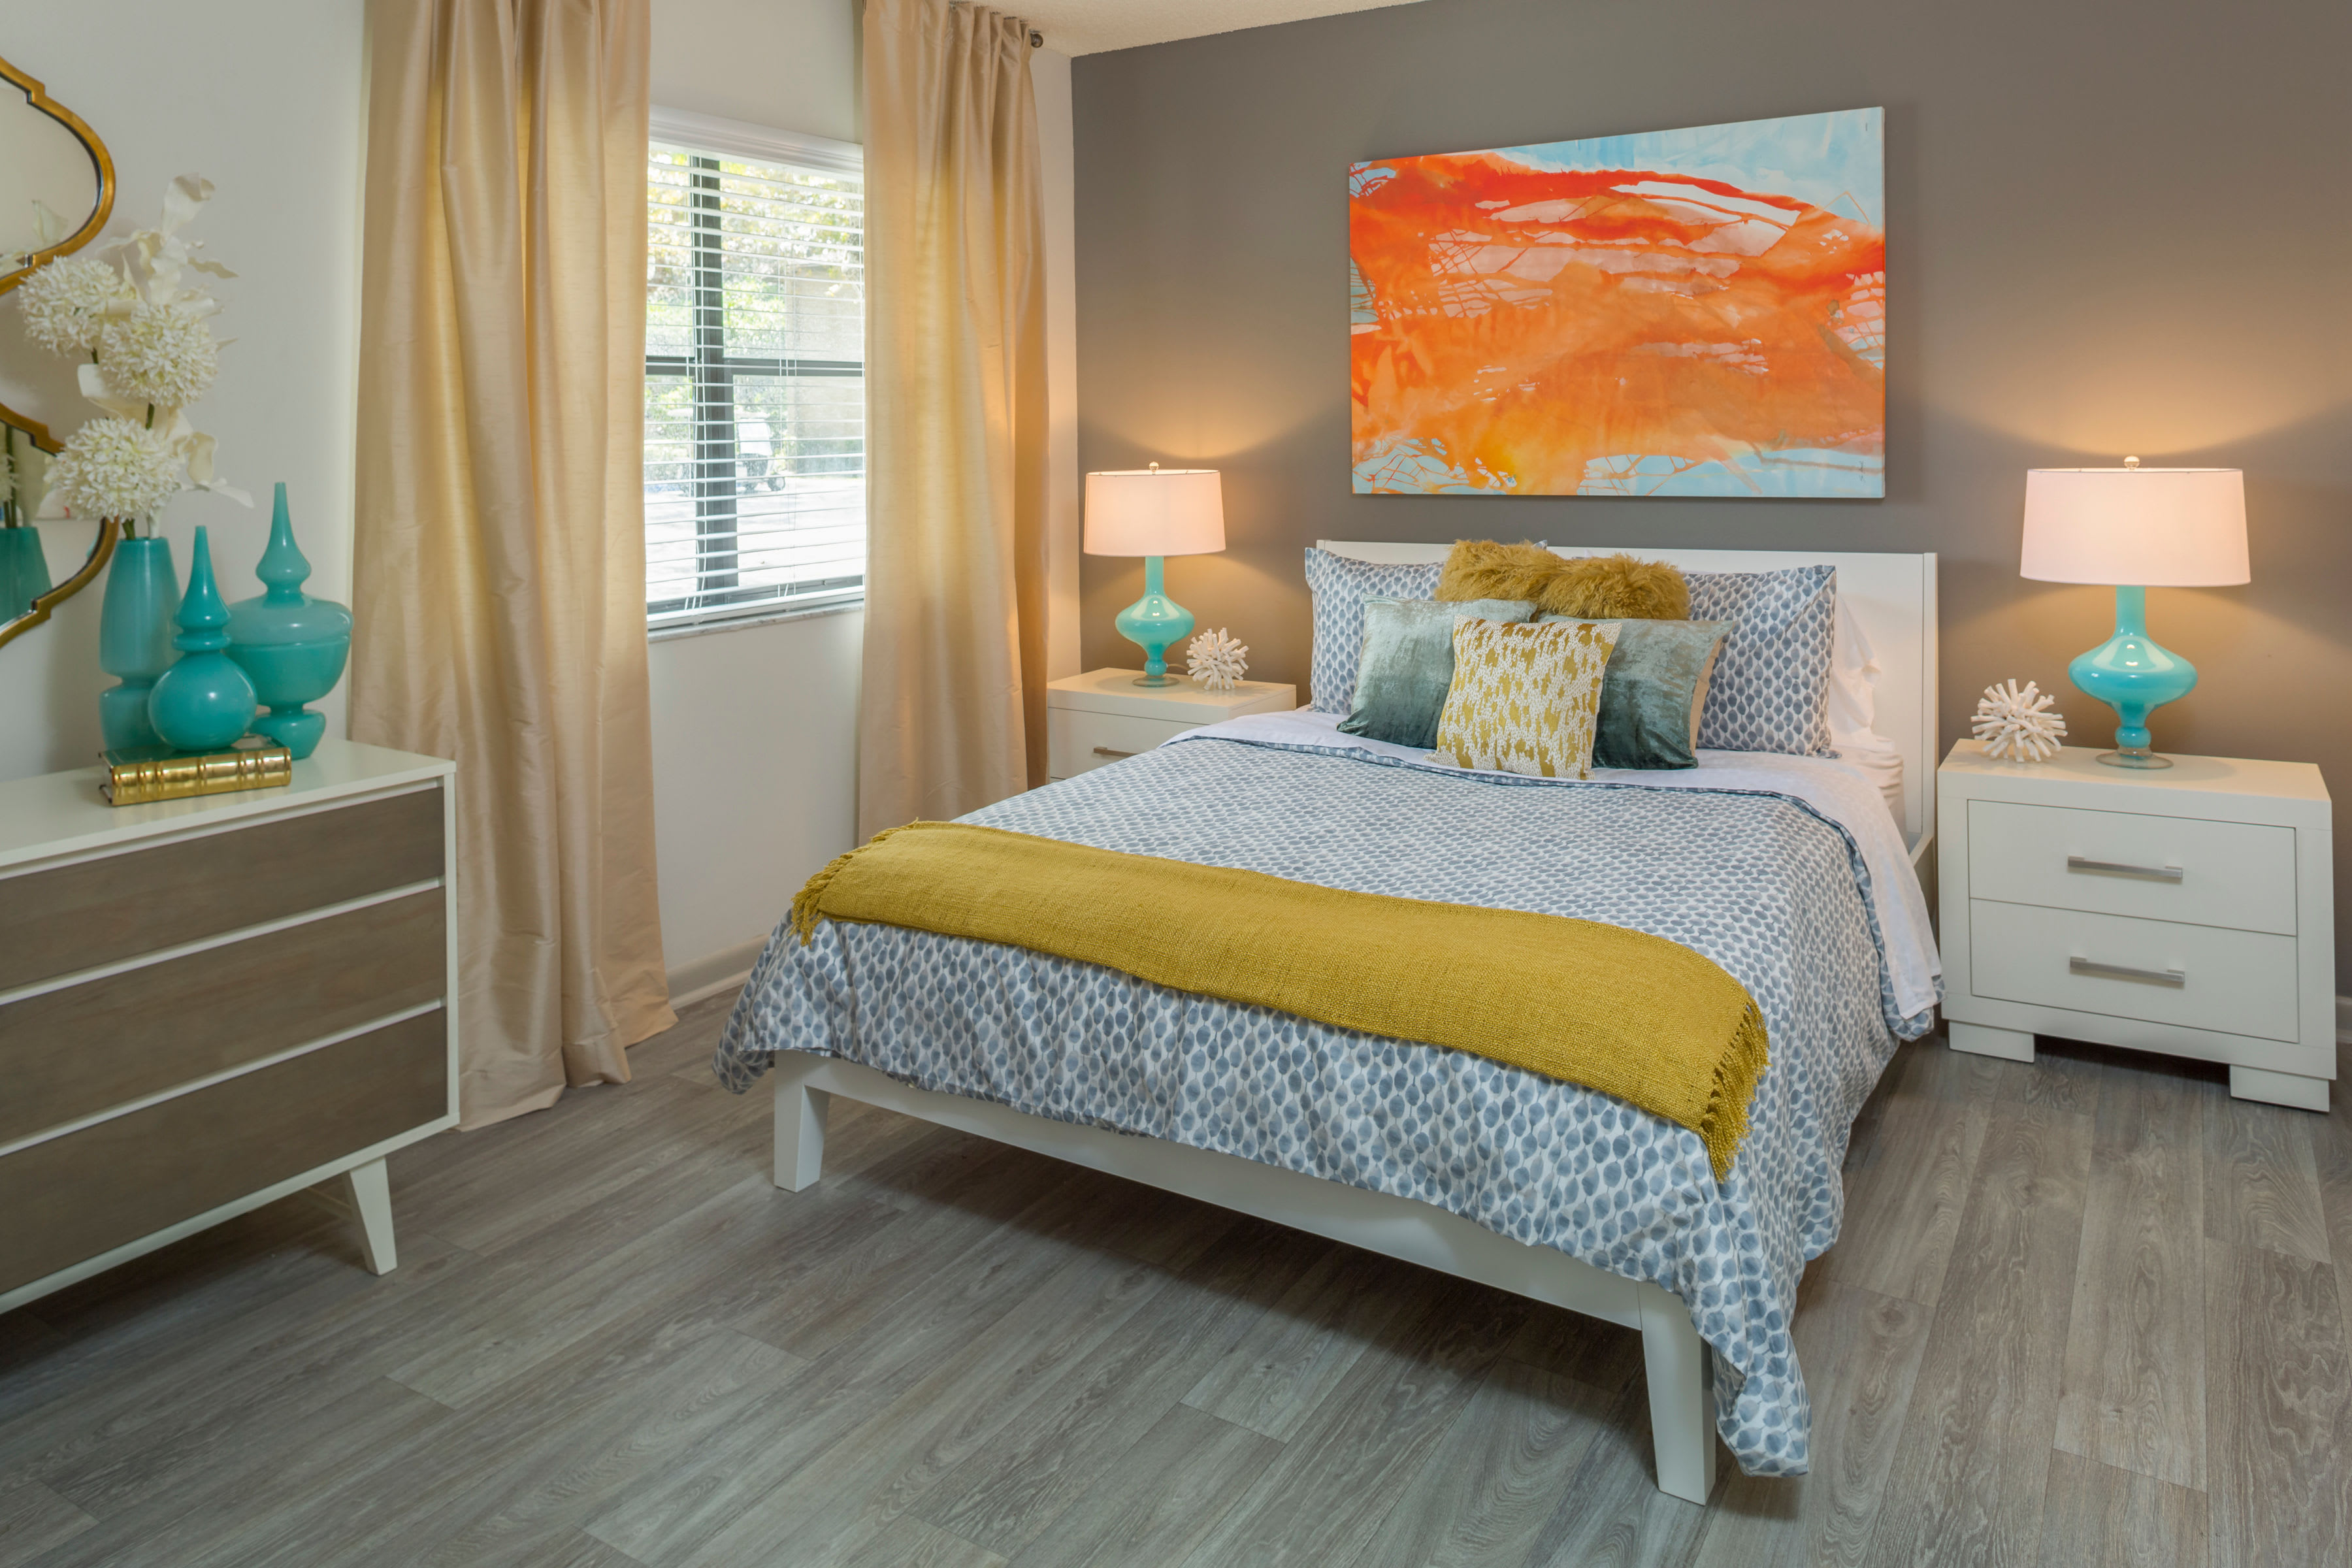 Modern decor in model home's living area at Siena Apartments in Plantation, Florida